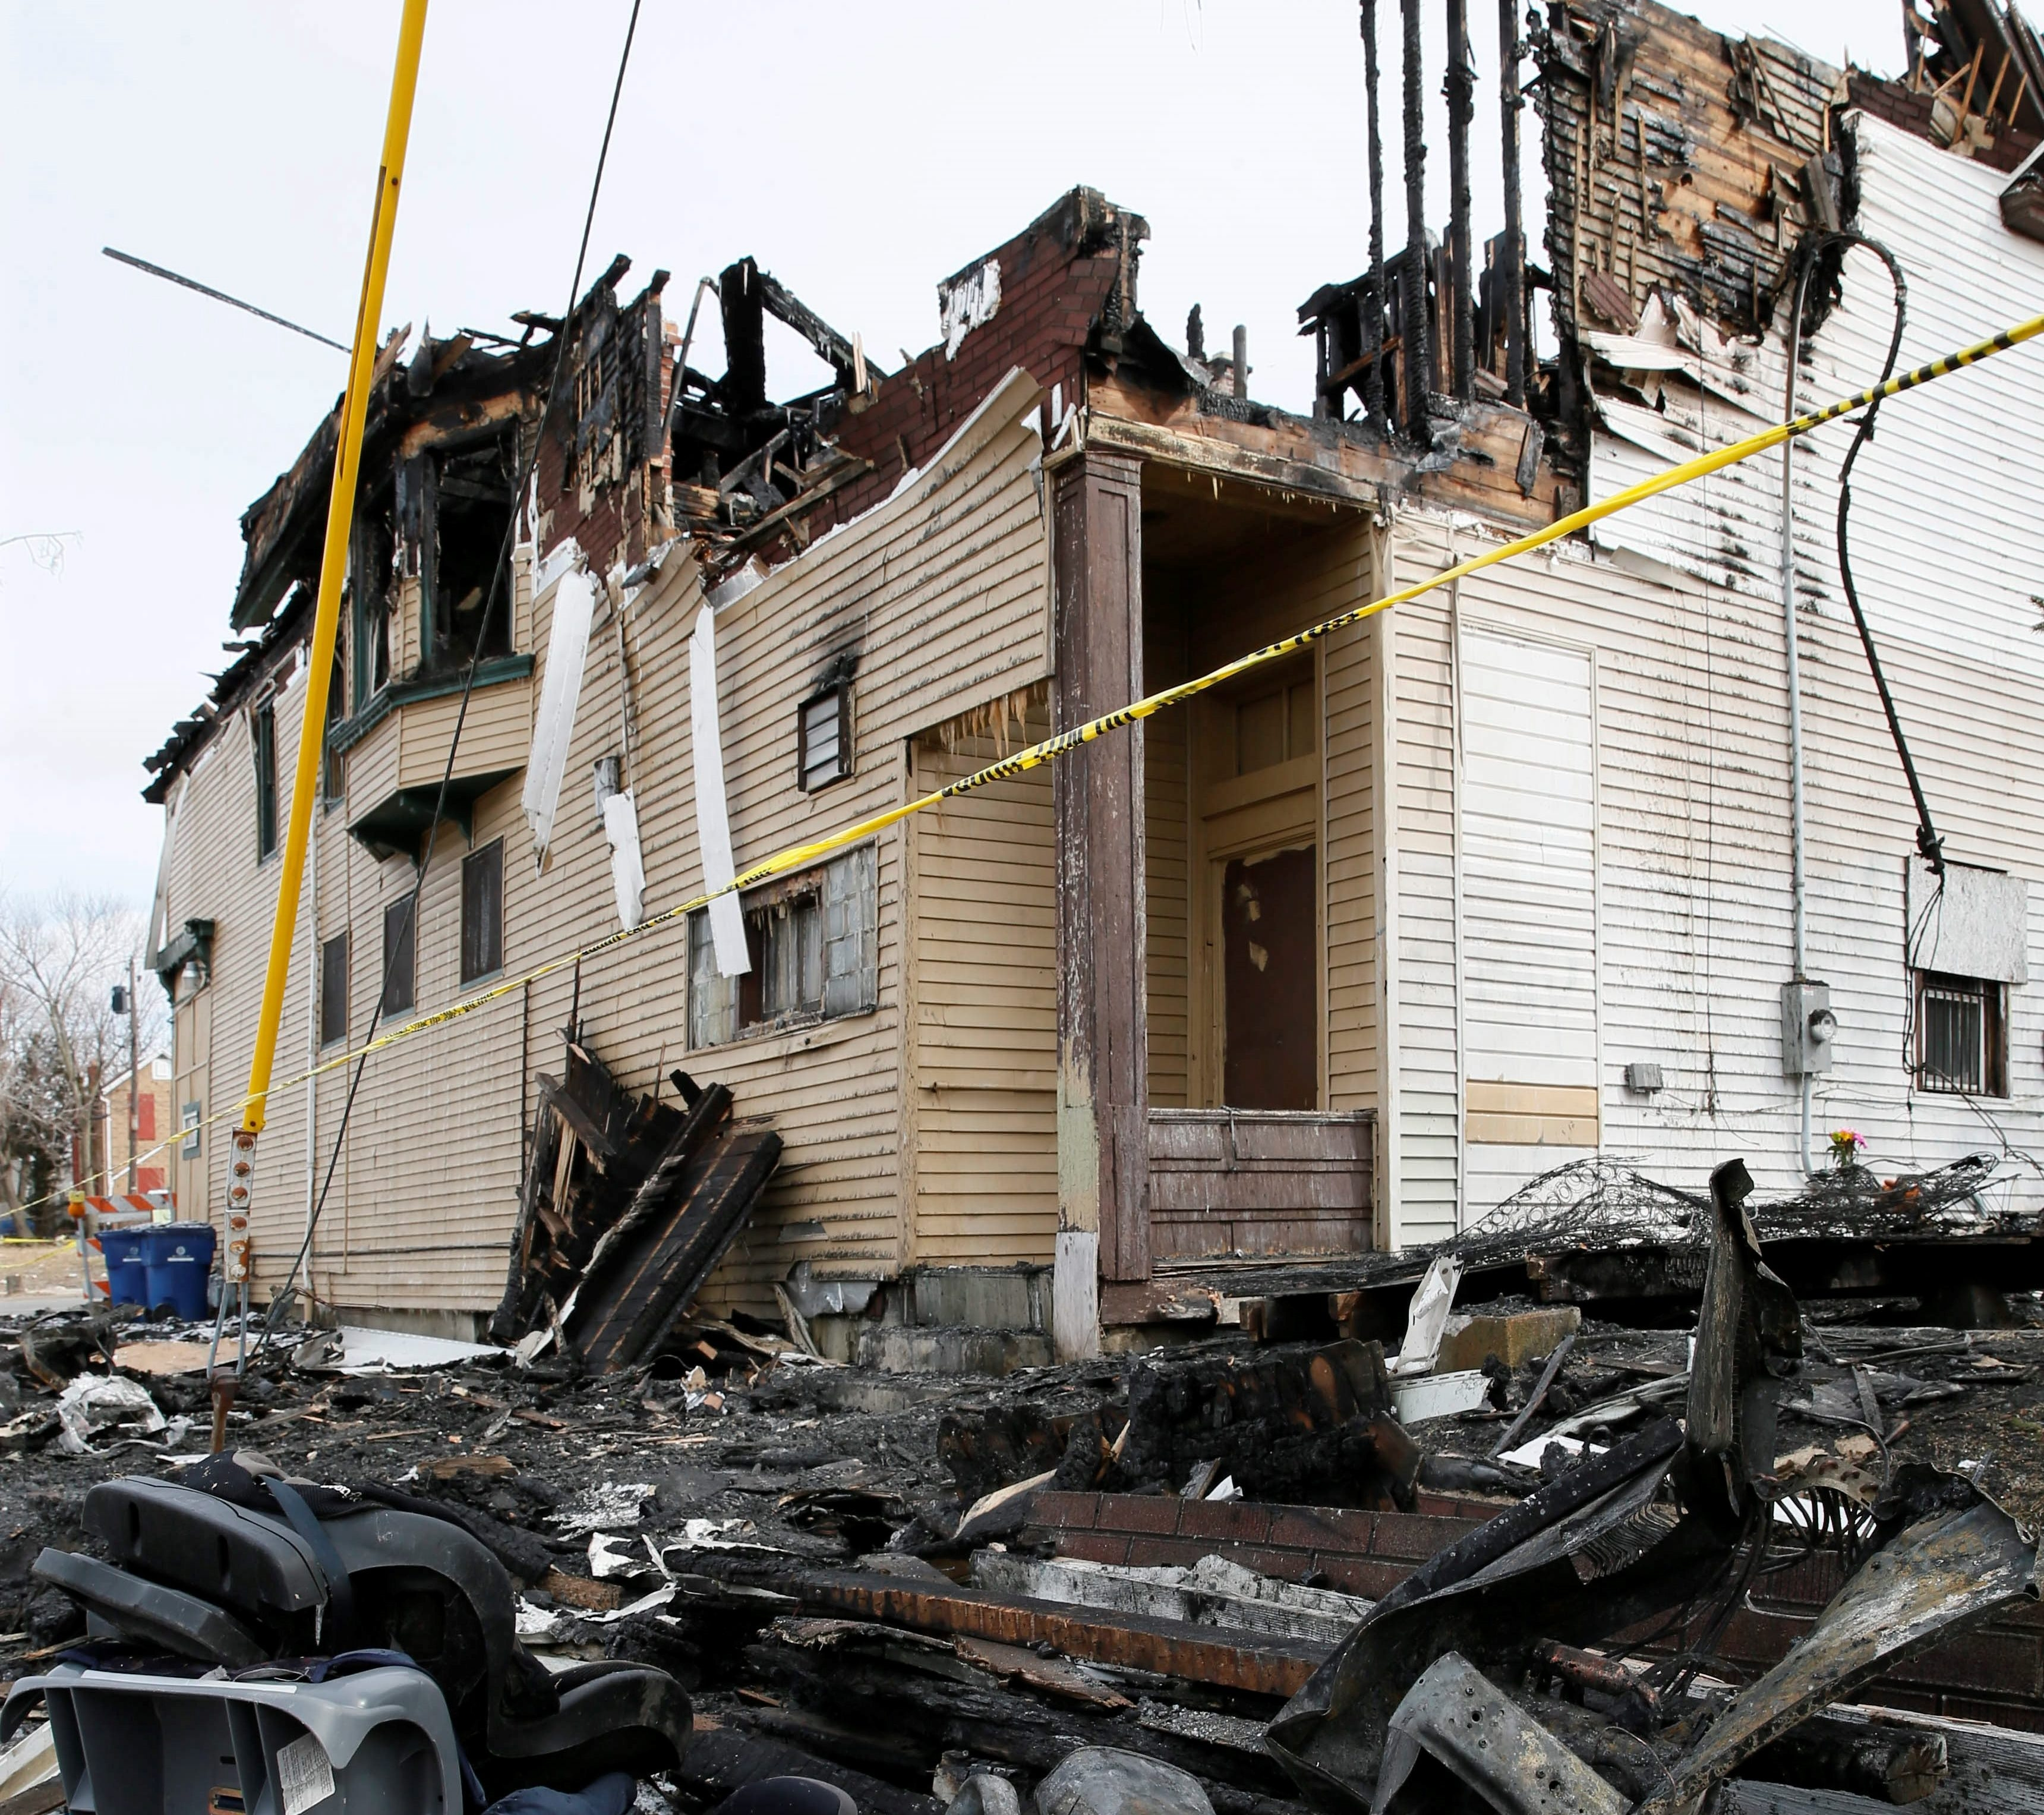 The scene of the fire on Fillmore and Woeppel that claimed the life of a 7-year-old boy March 24.